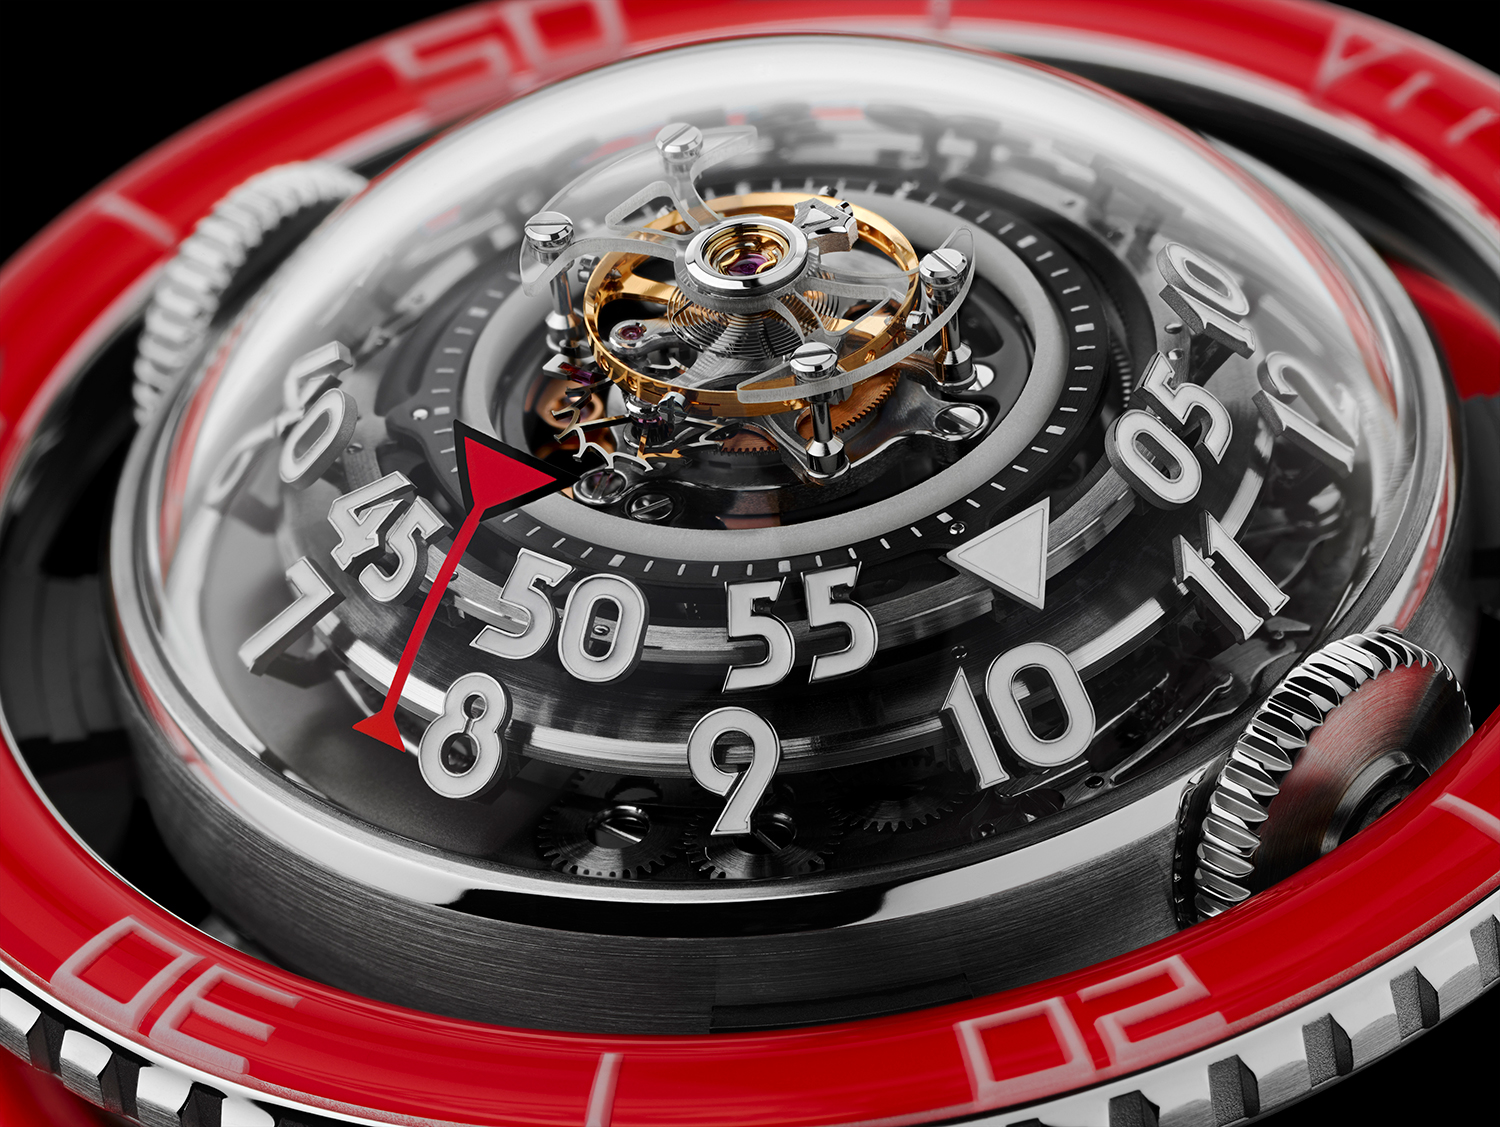 Detalle del movimiento del MB&F HM7 Platinum Red